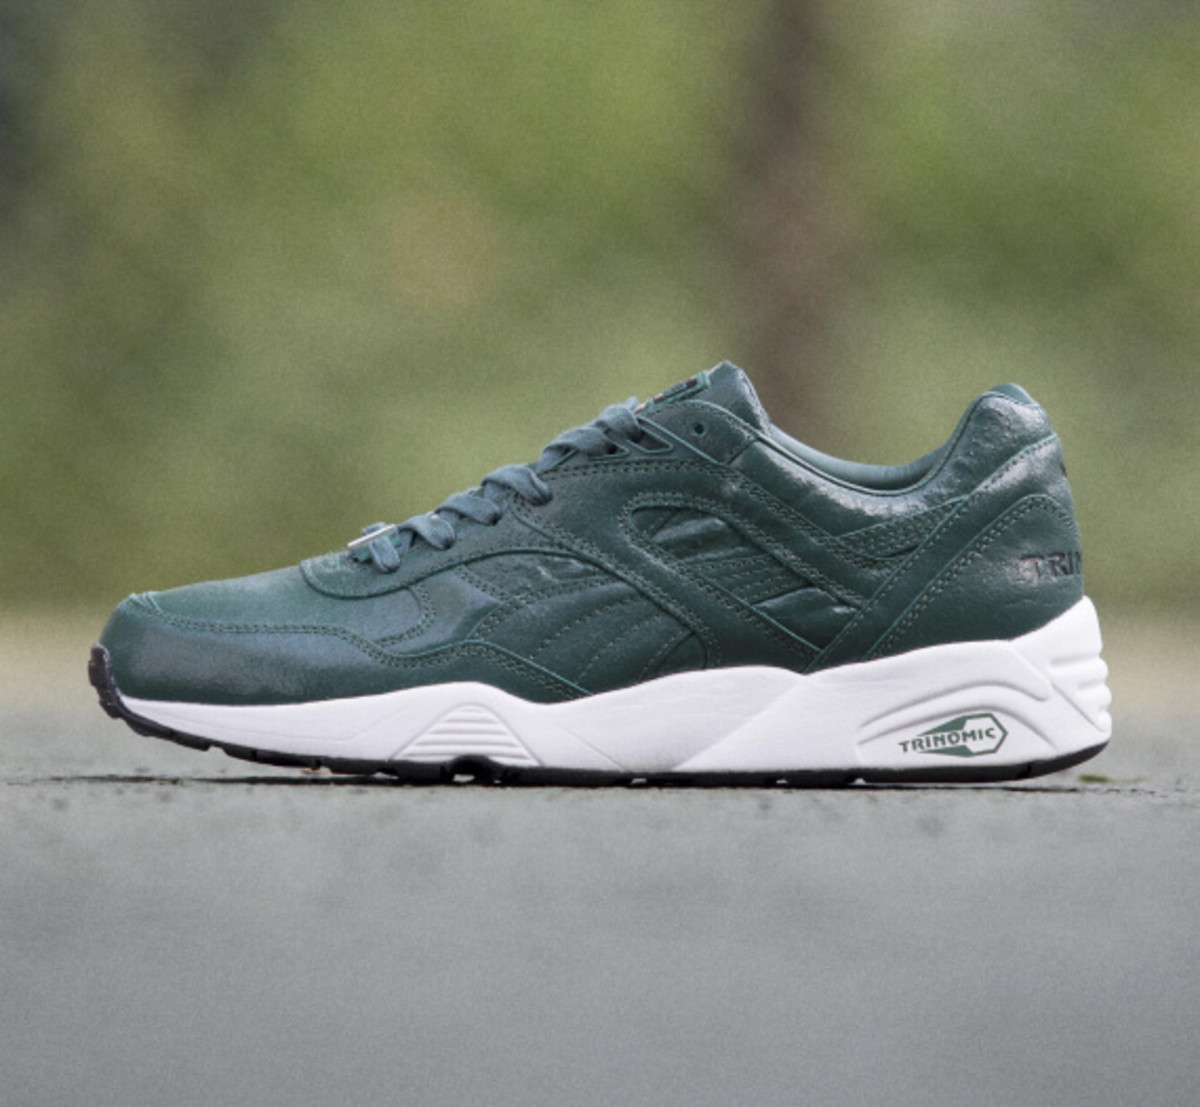 "PUMA Trinomic - ""Crackle"" Pack - 13"